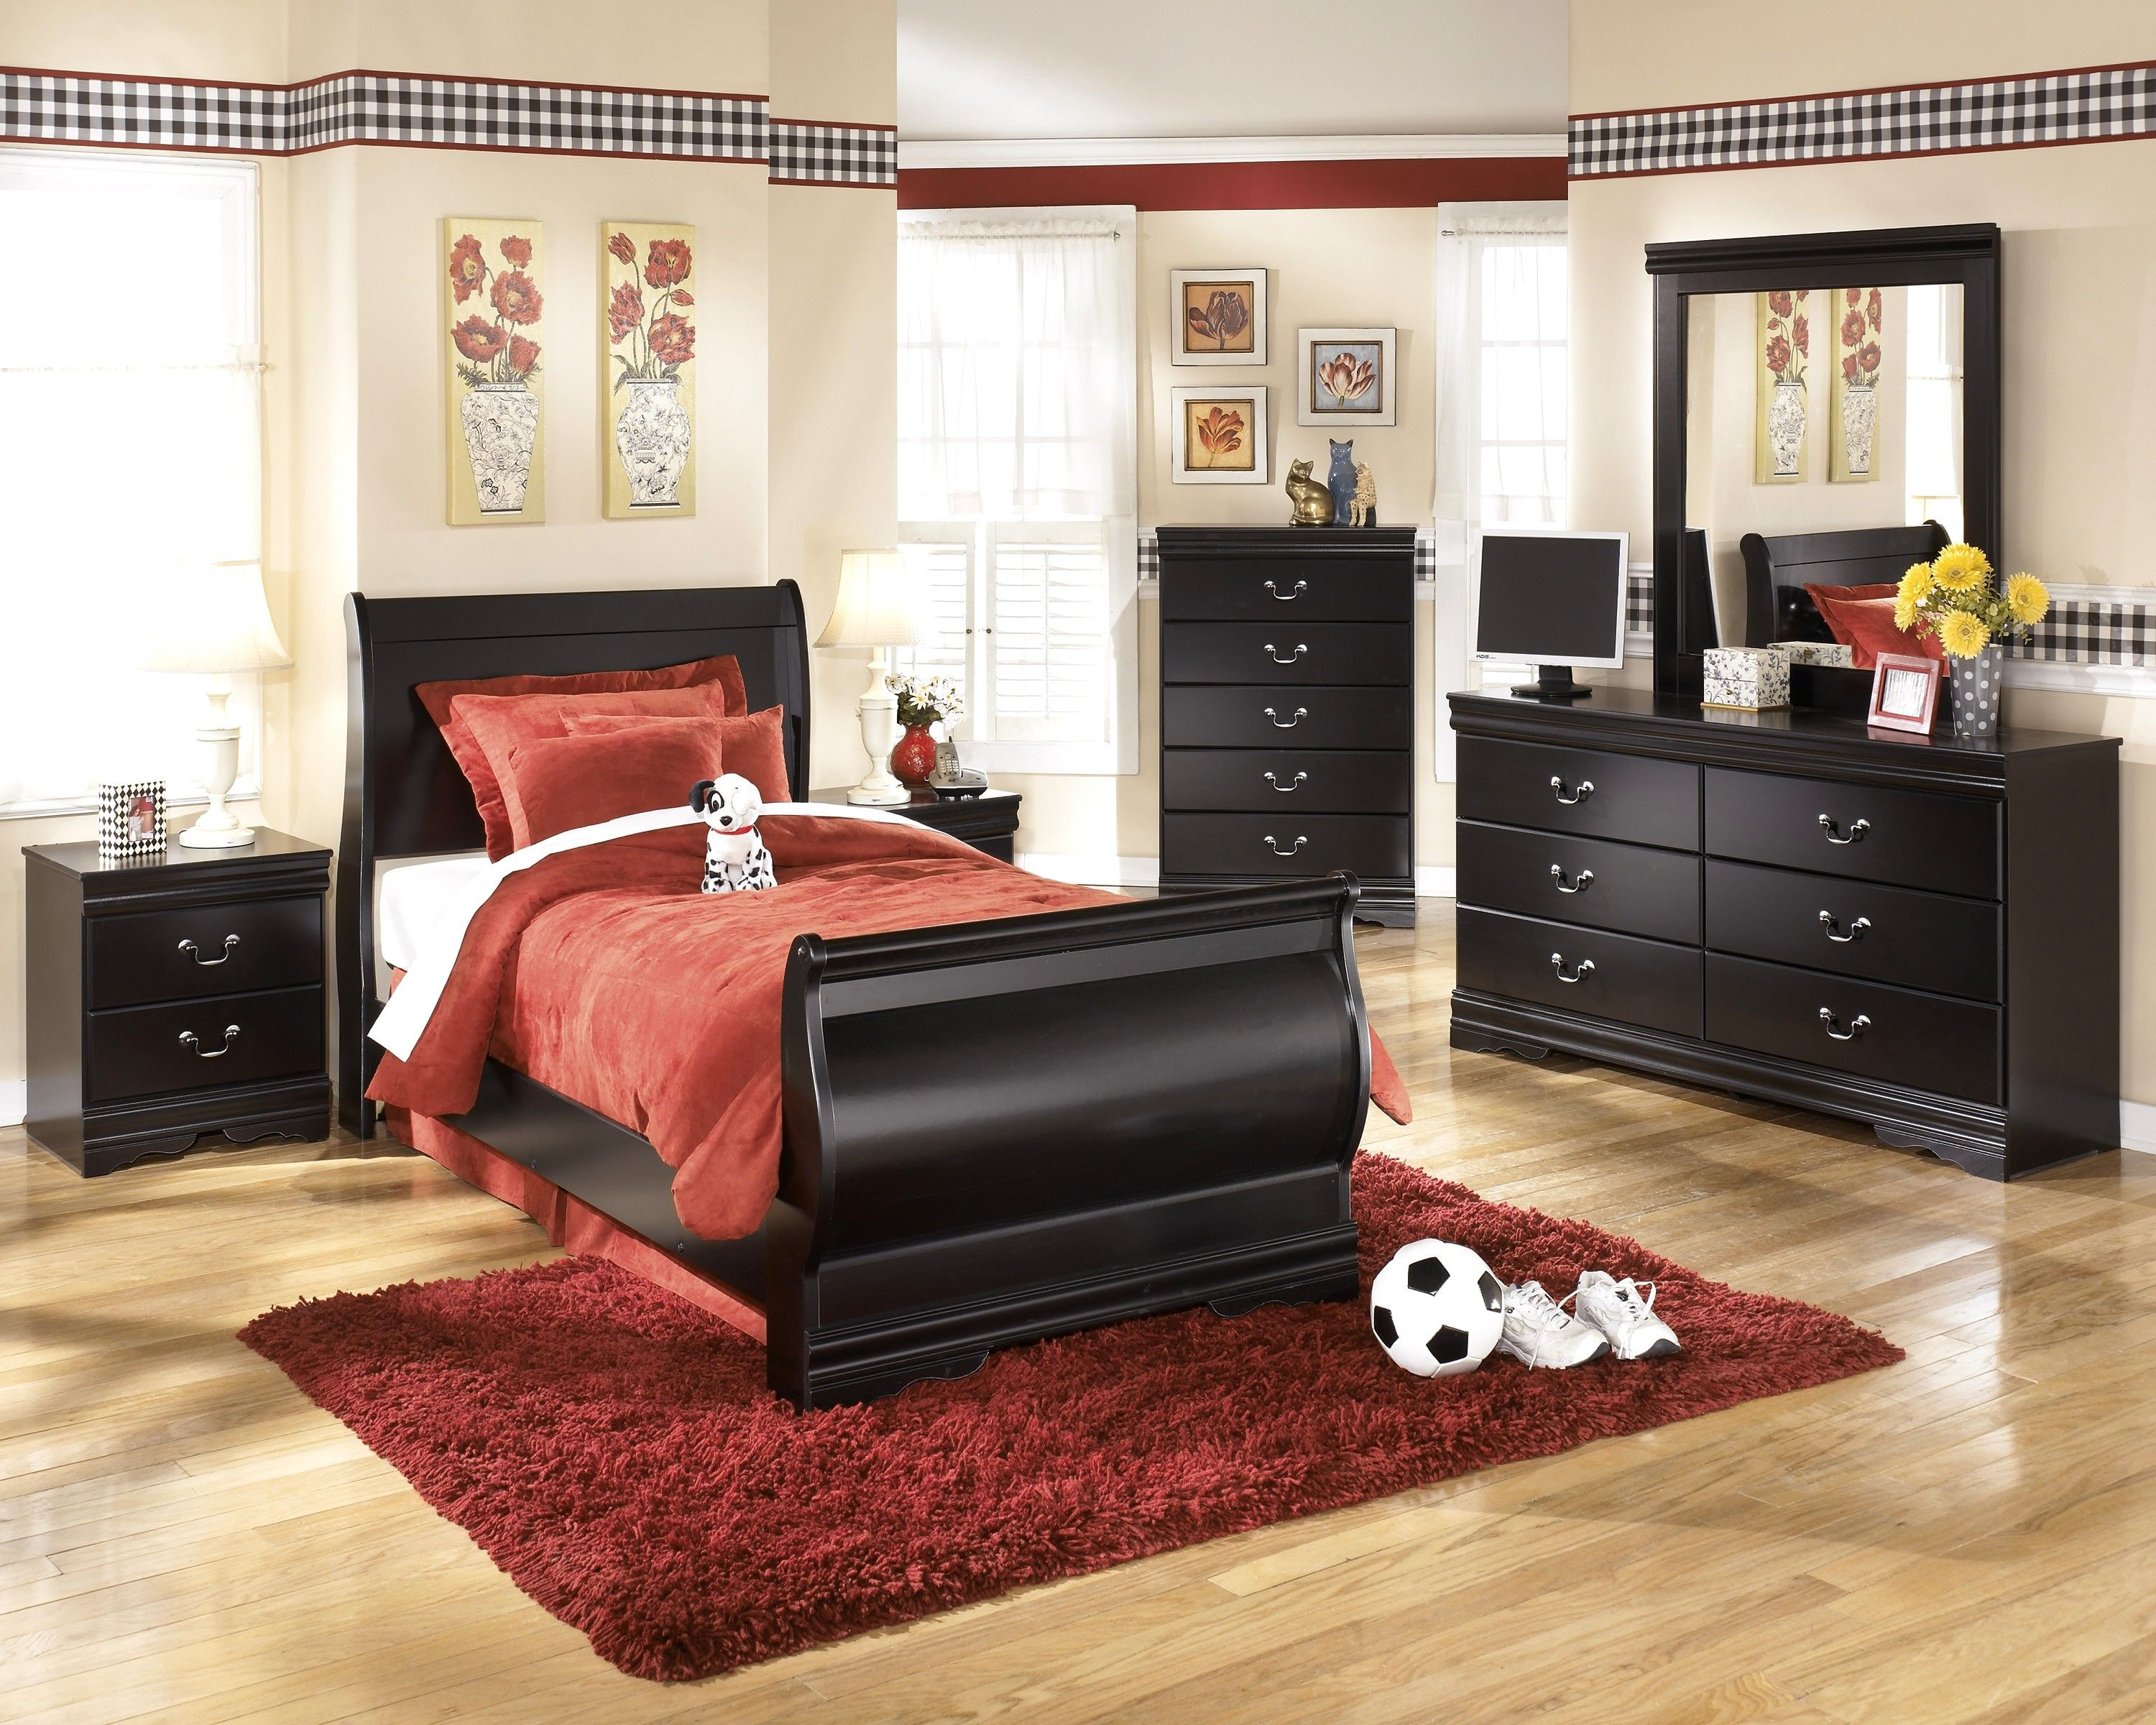 Enchanting Twin Bedroom Set with Red Fur Area Rug and